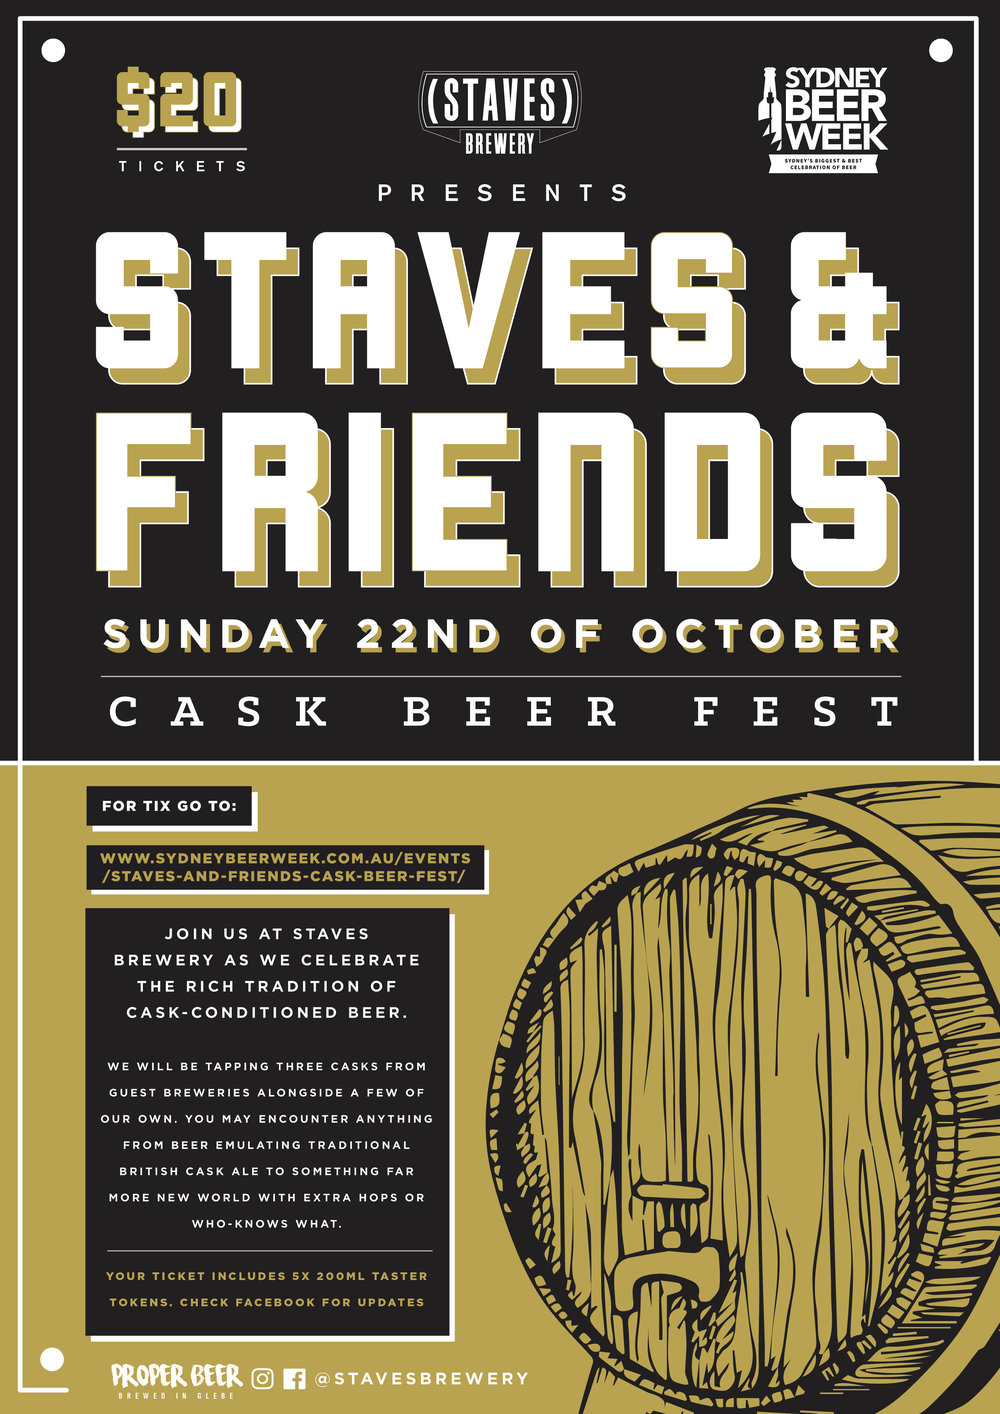 OUR MATES BRINGING CASKS ARE : - FLATROCK BEER CAFE4 PINESWILDFLOWER